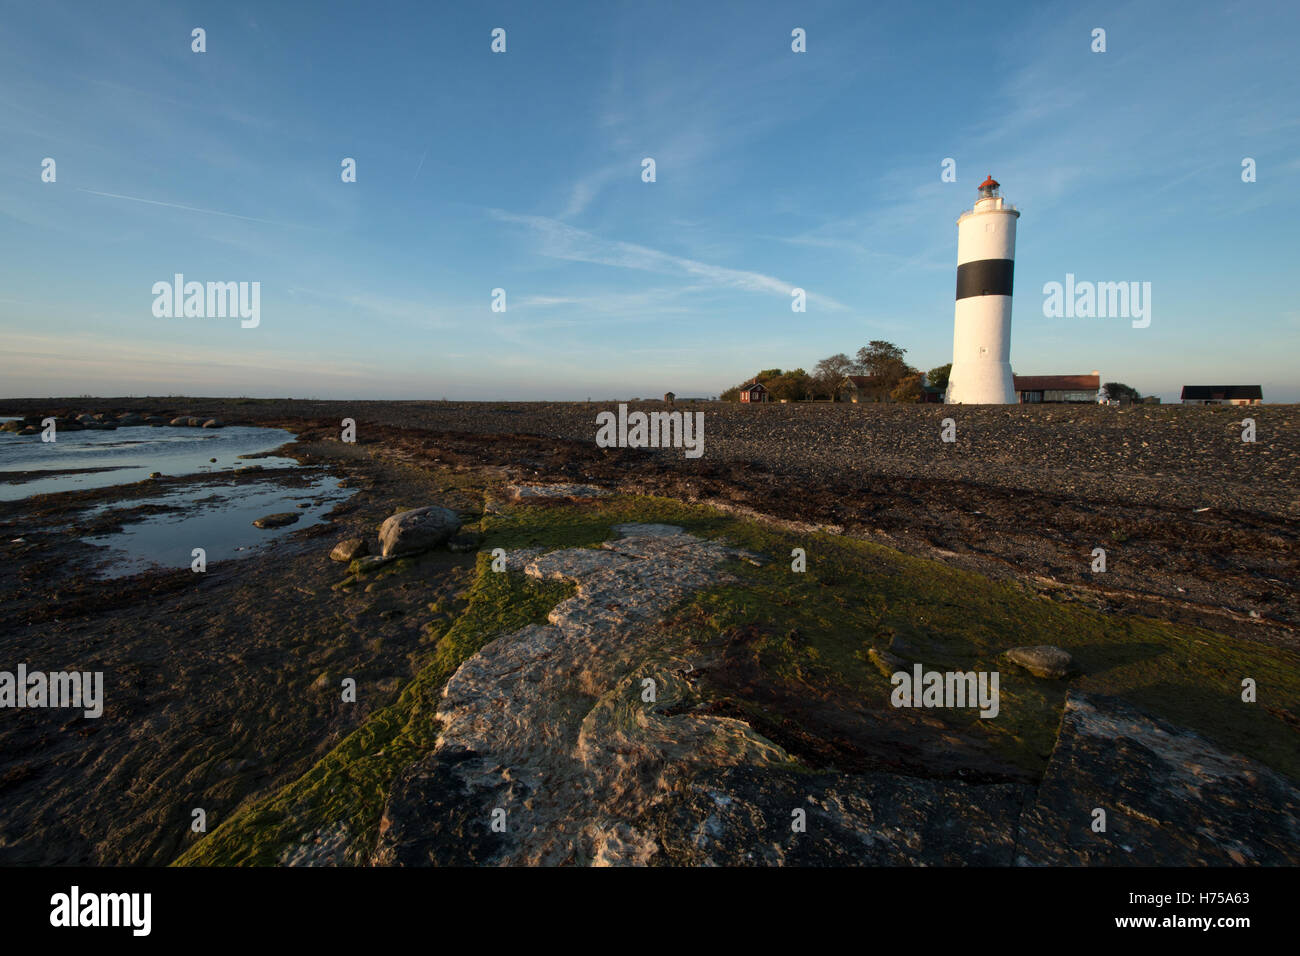 Lighthouse Långe Jan / Tall John / Langer Jan at the south cape of Öland in the Baltic Sea, Sweden - Stock Image